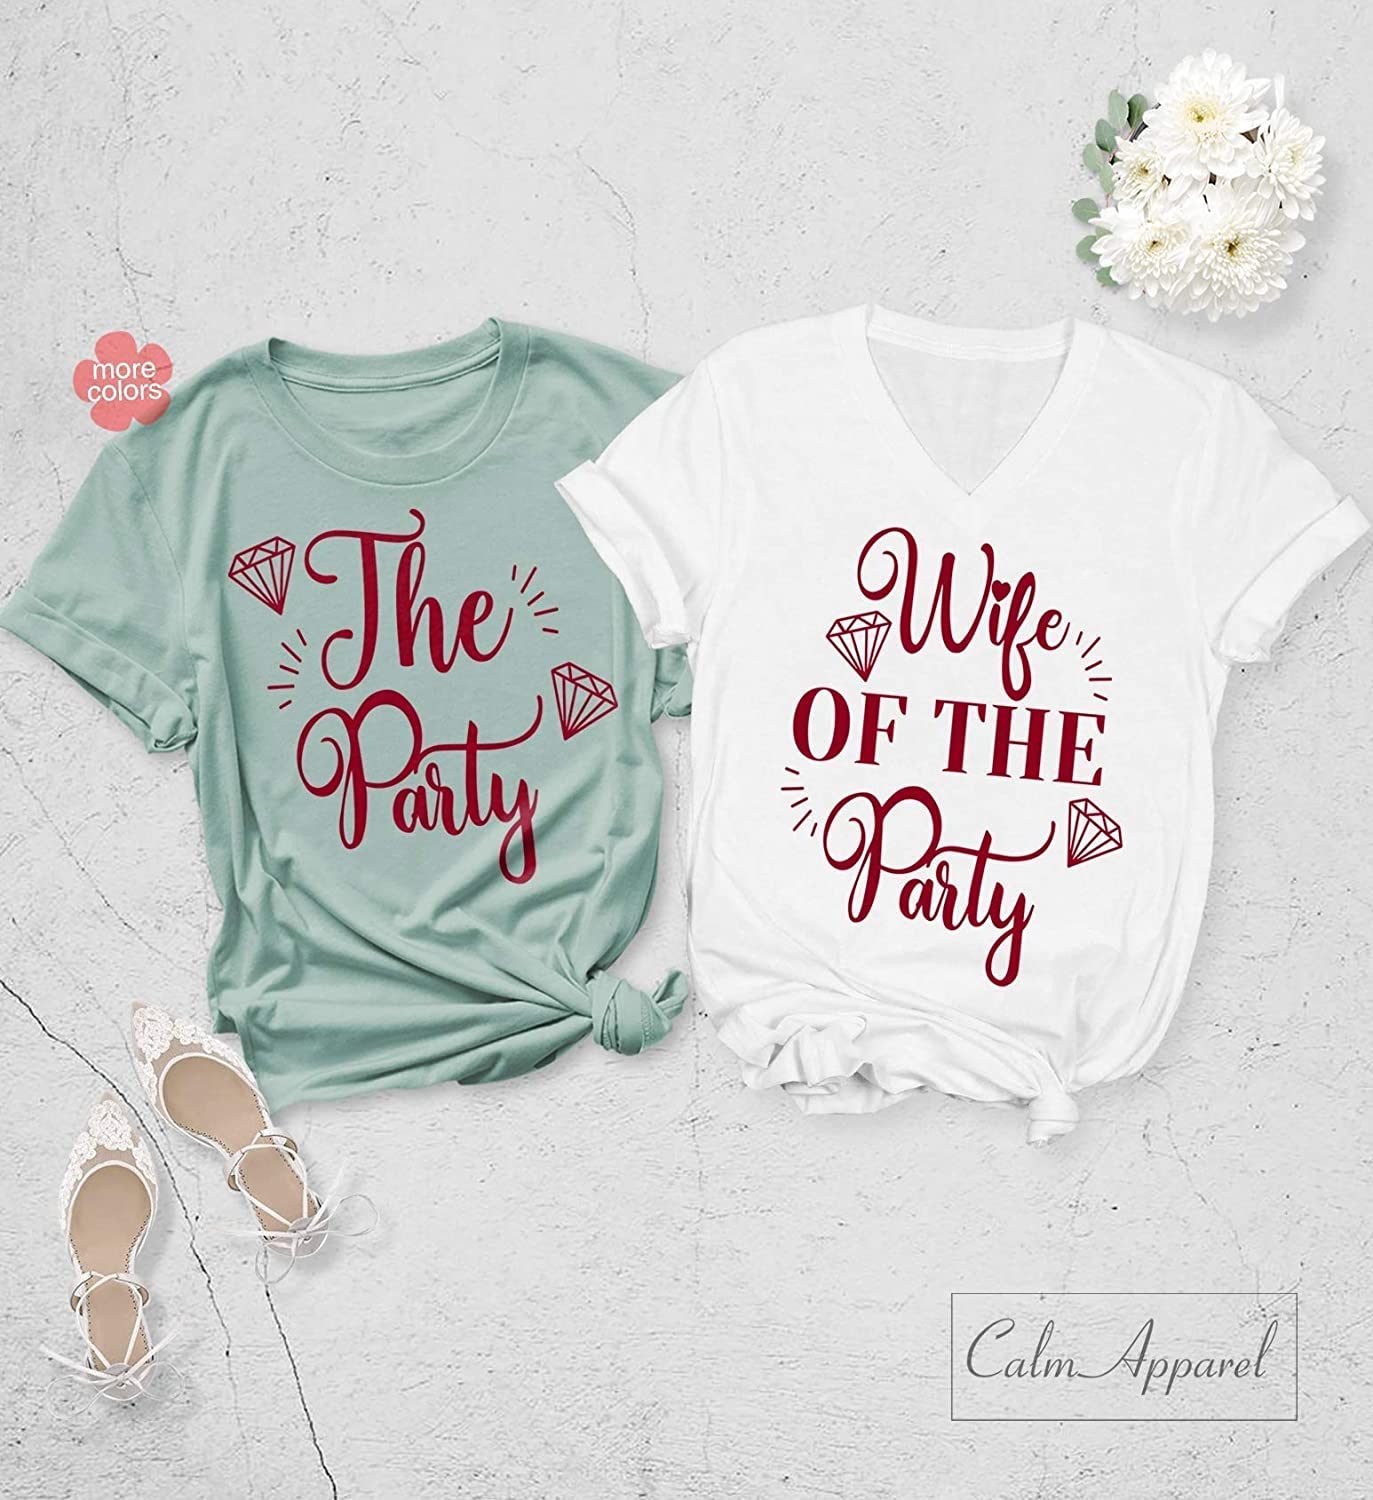 The Party Shirts Bachelorette Party Tanks Wife of The Party Shirts Bridal Party T Shirt Bridesmaid Shirts Gift Set